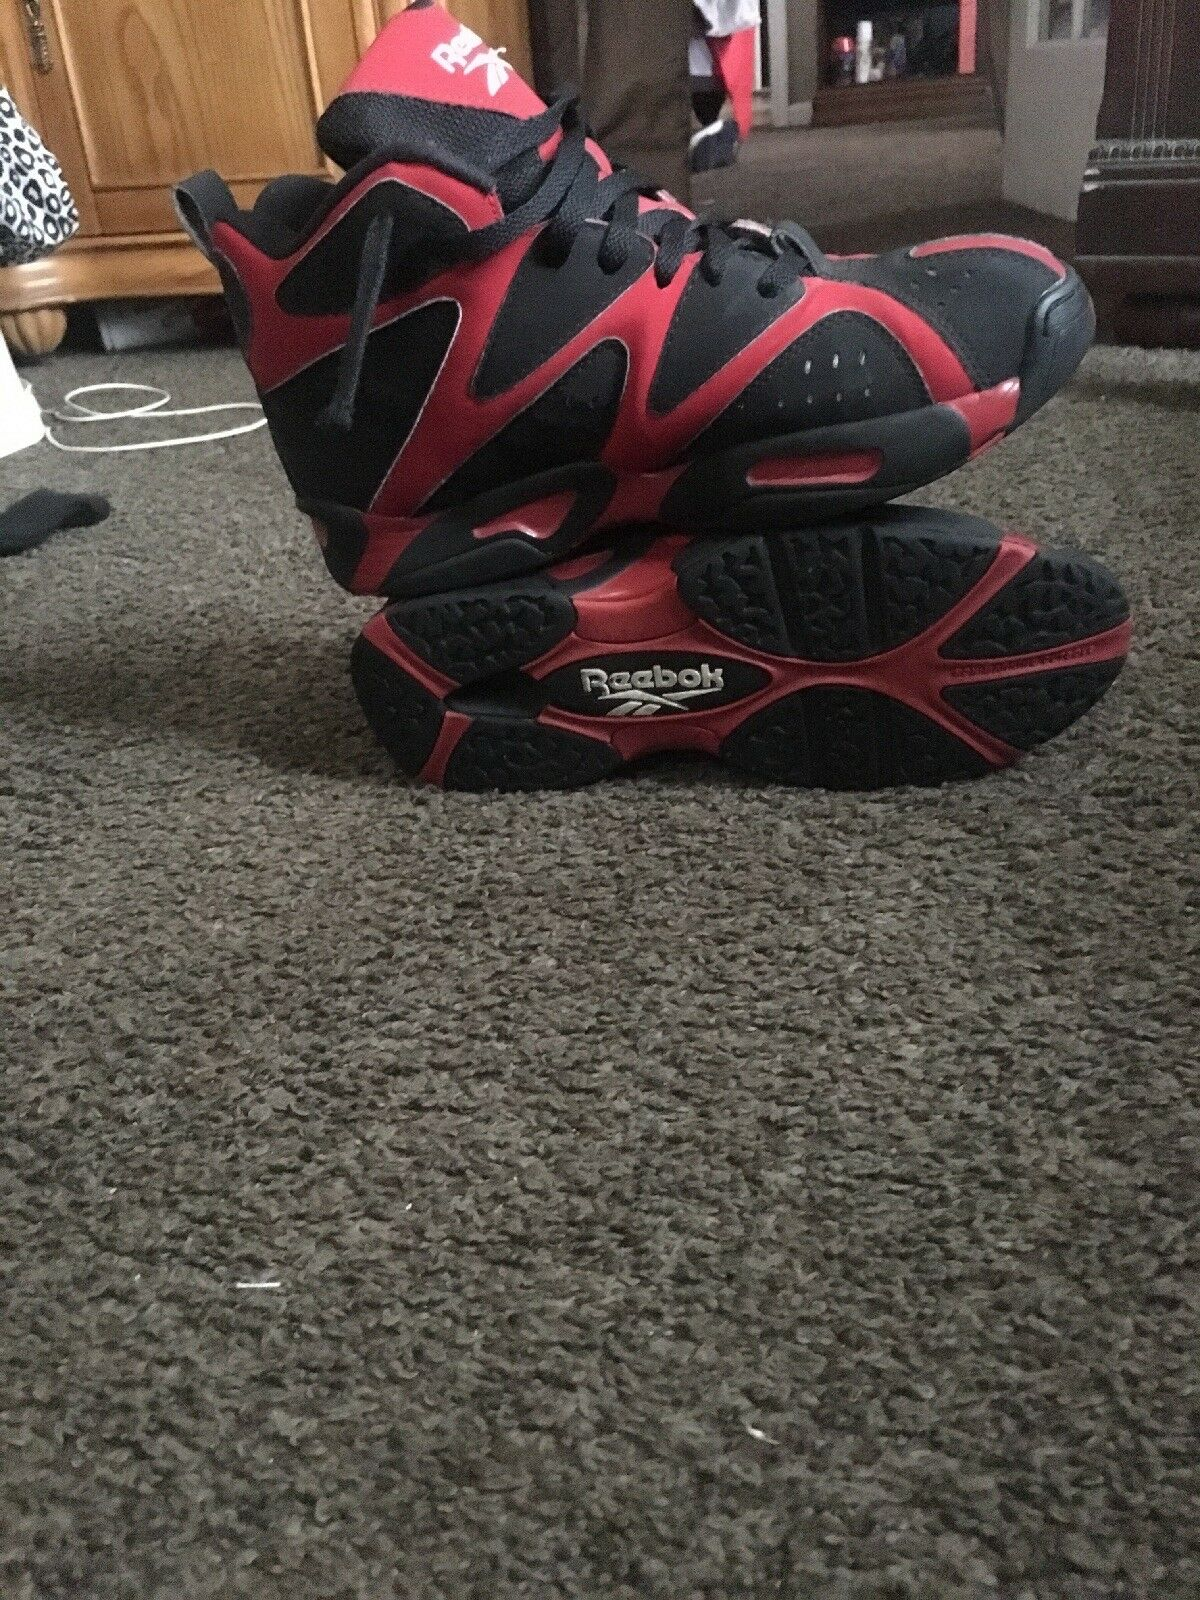 Men's Reebok Kamikaze 1 Sneakers Size 9.5 Red And Black